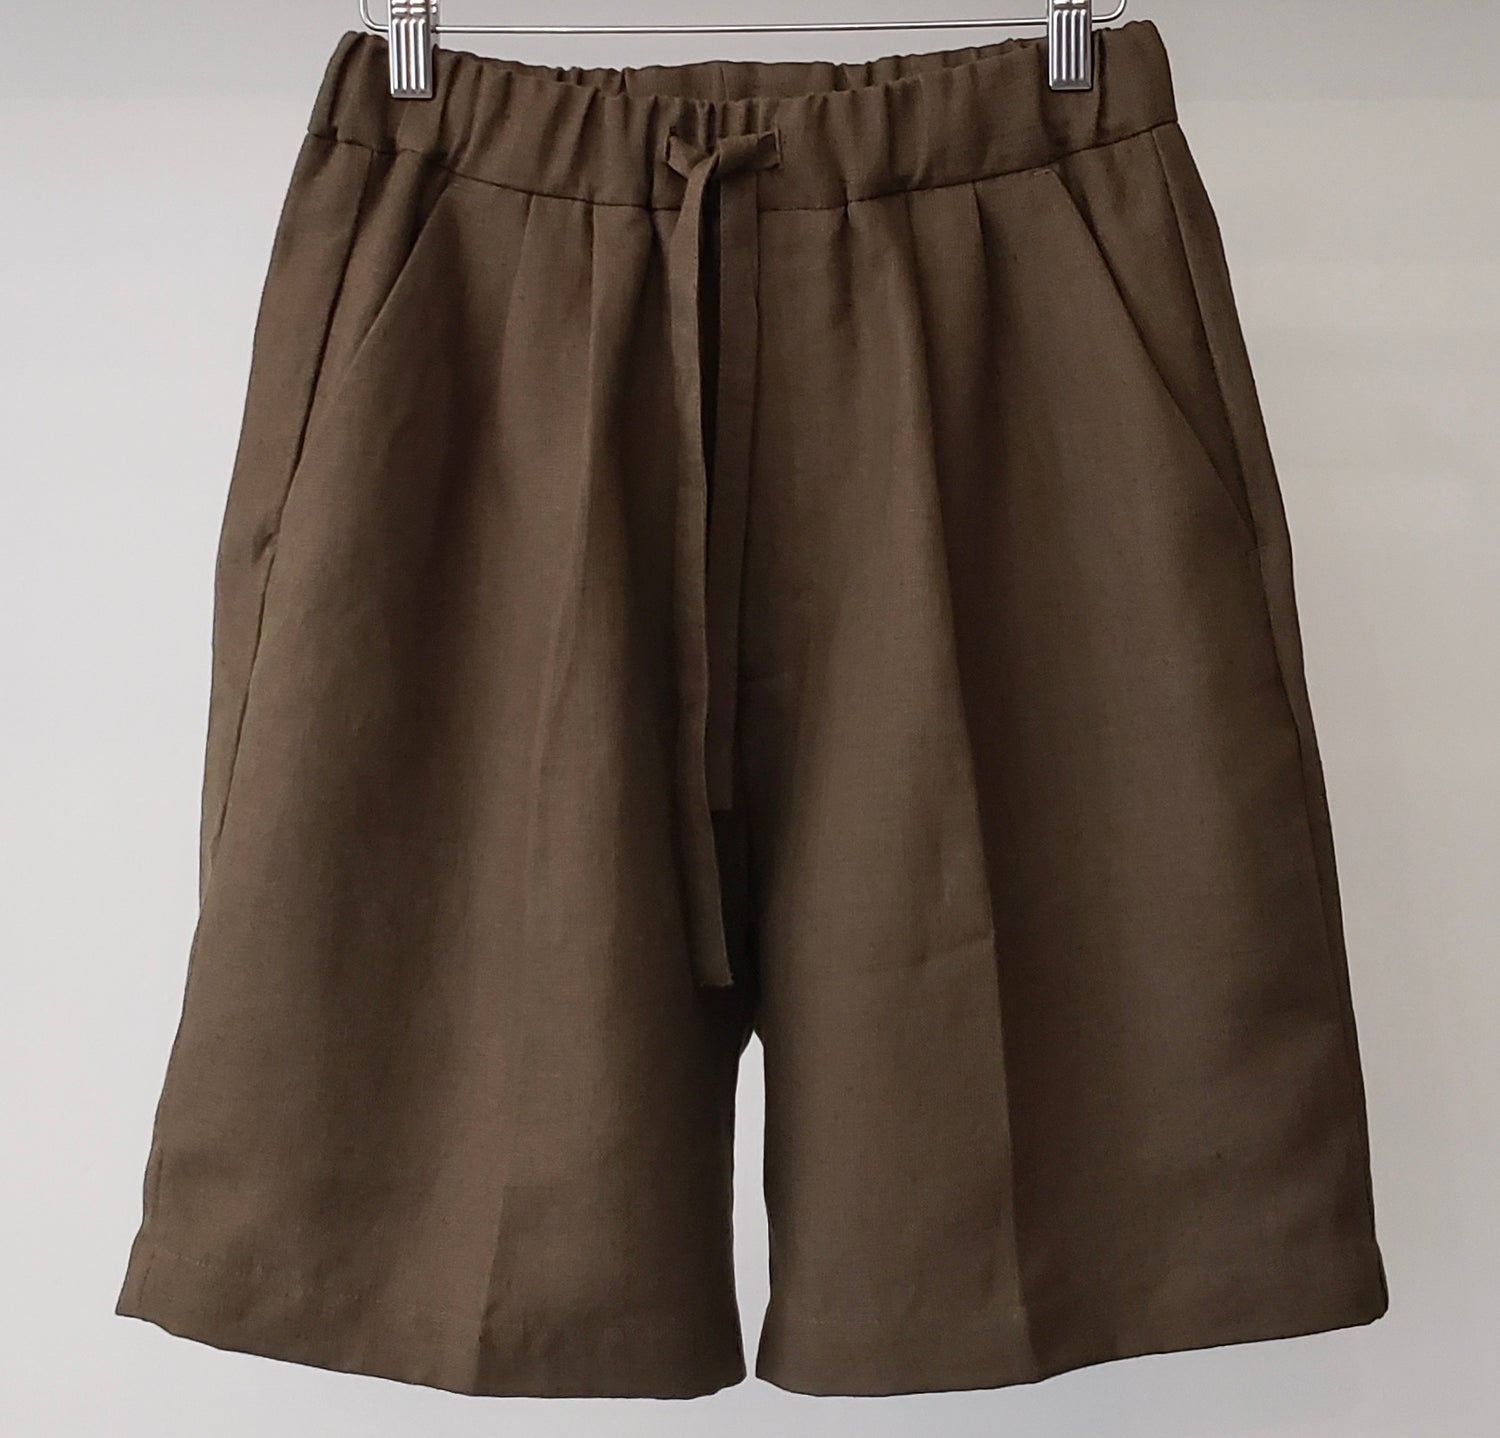 Informale X The Bloke Linen Drawstring Shorts